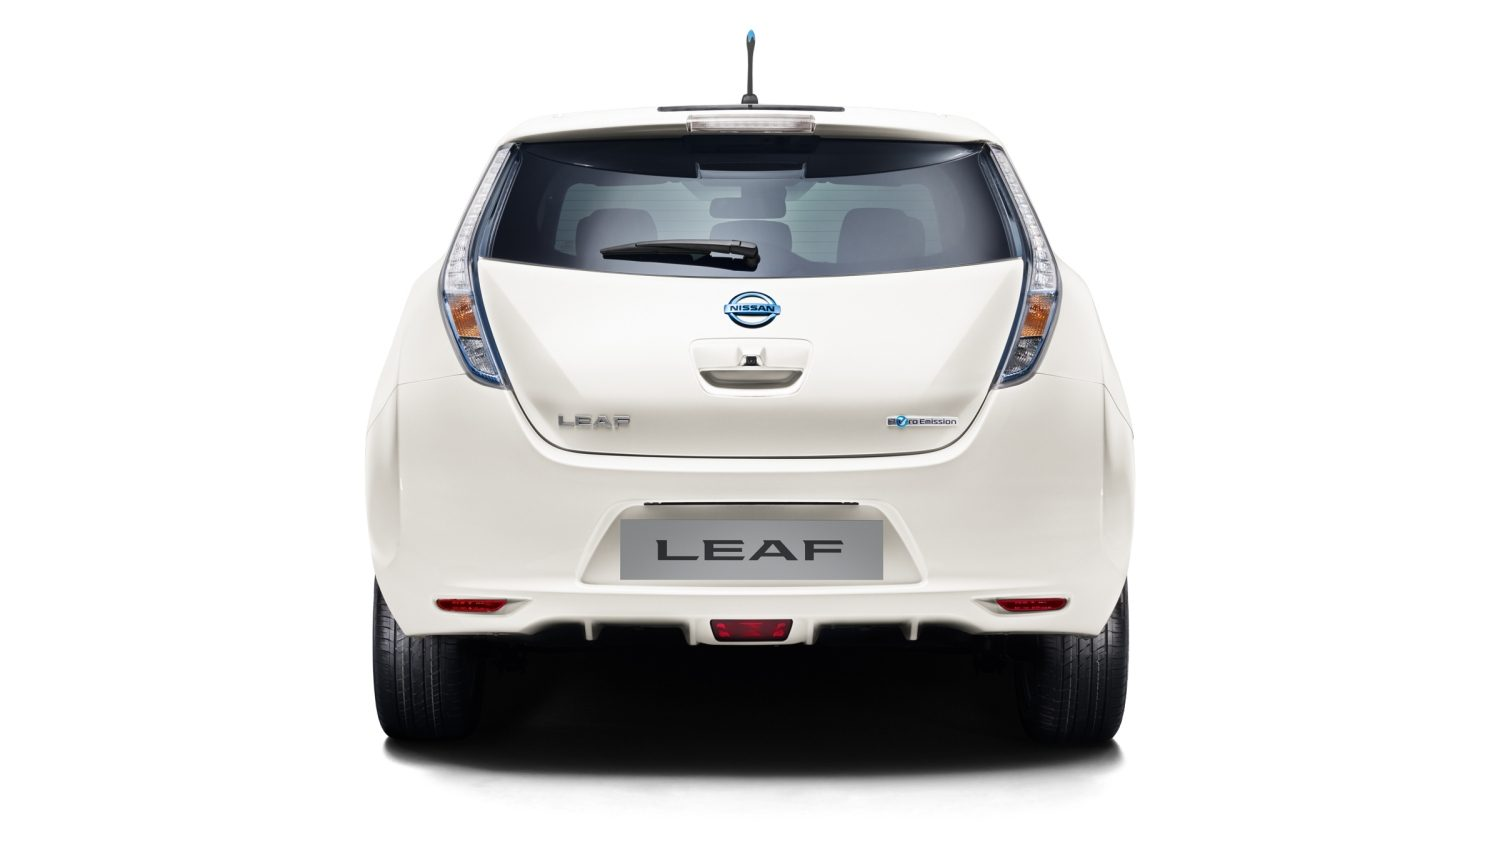 Nissan LEAF | Electric car rear exterior